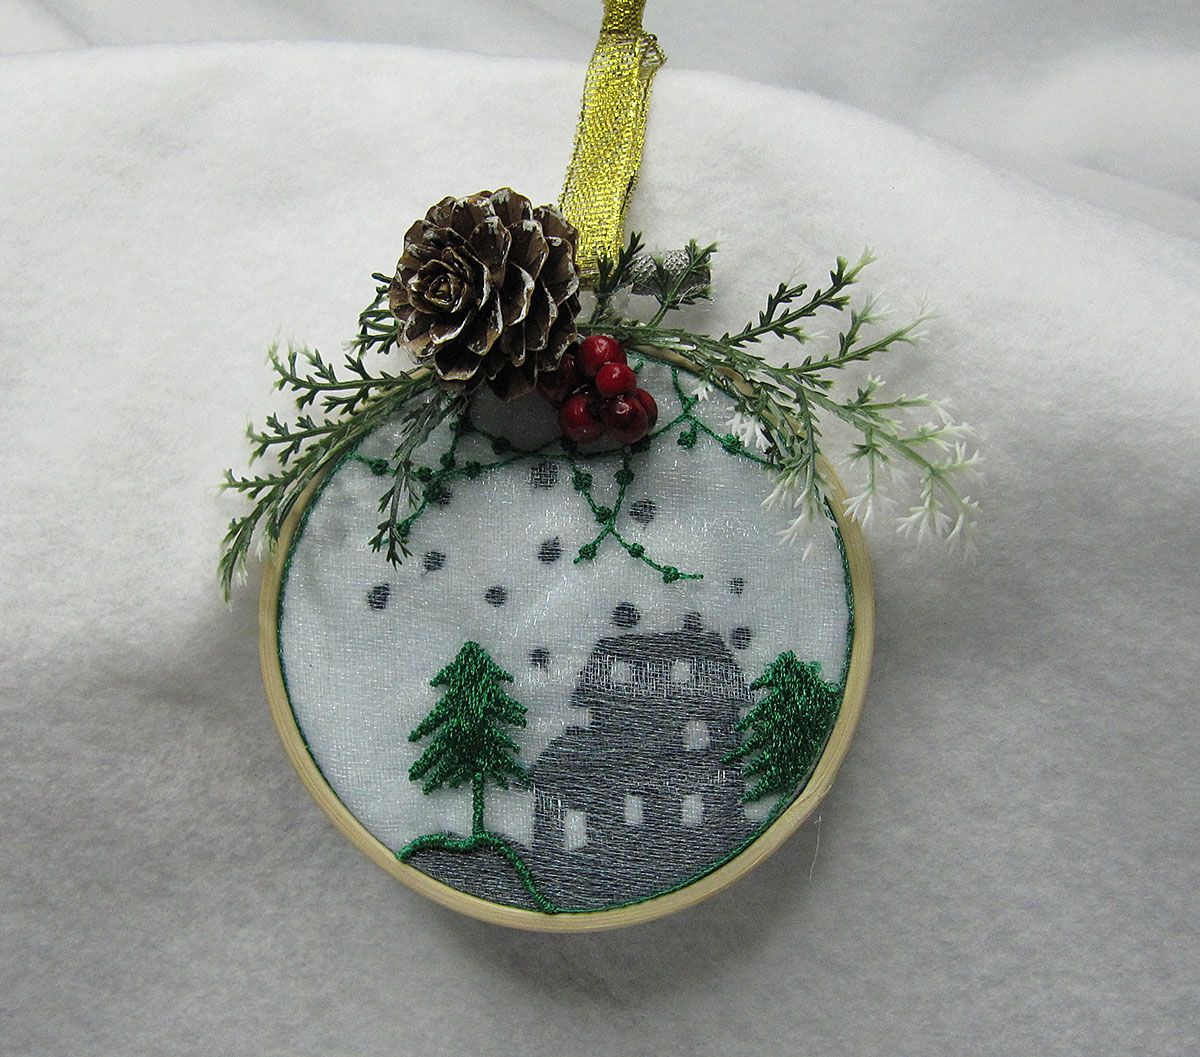 Christmas Dimension Ornament House Embroidery Design